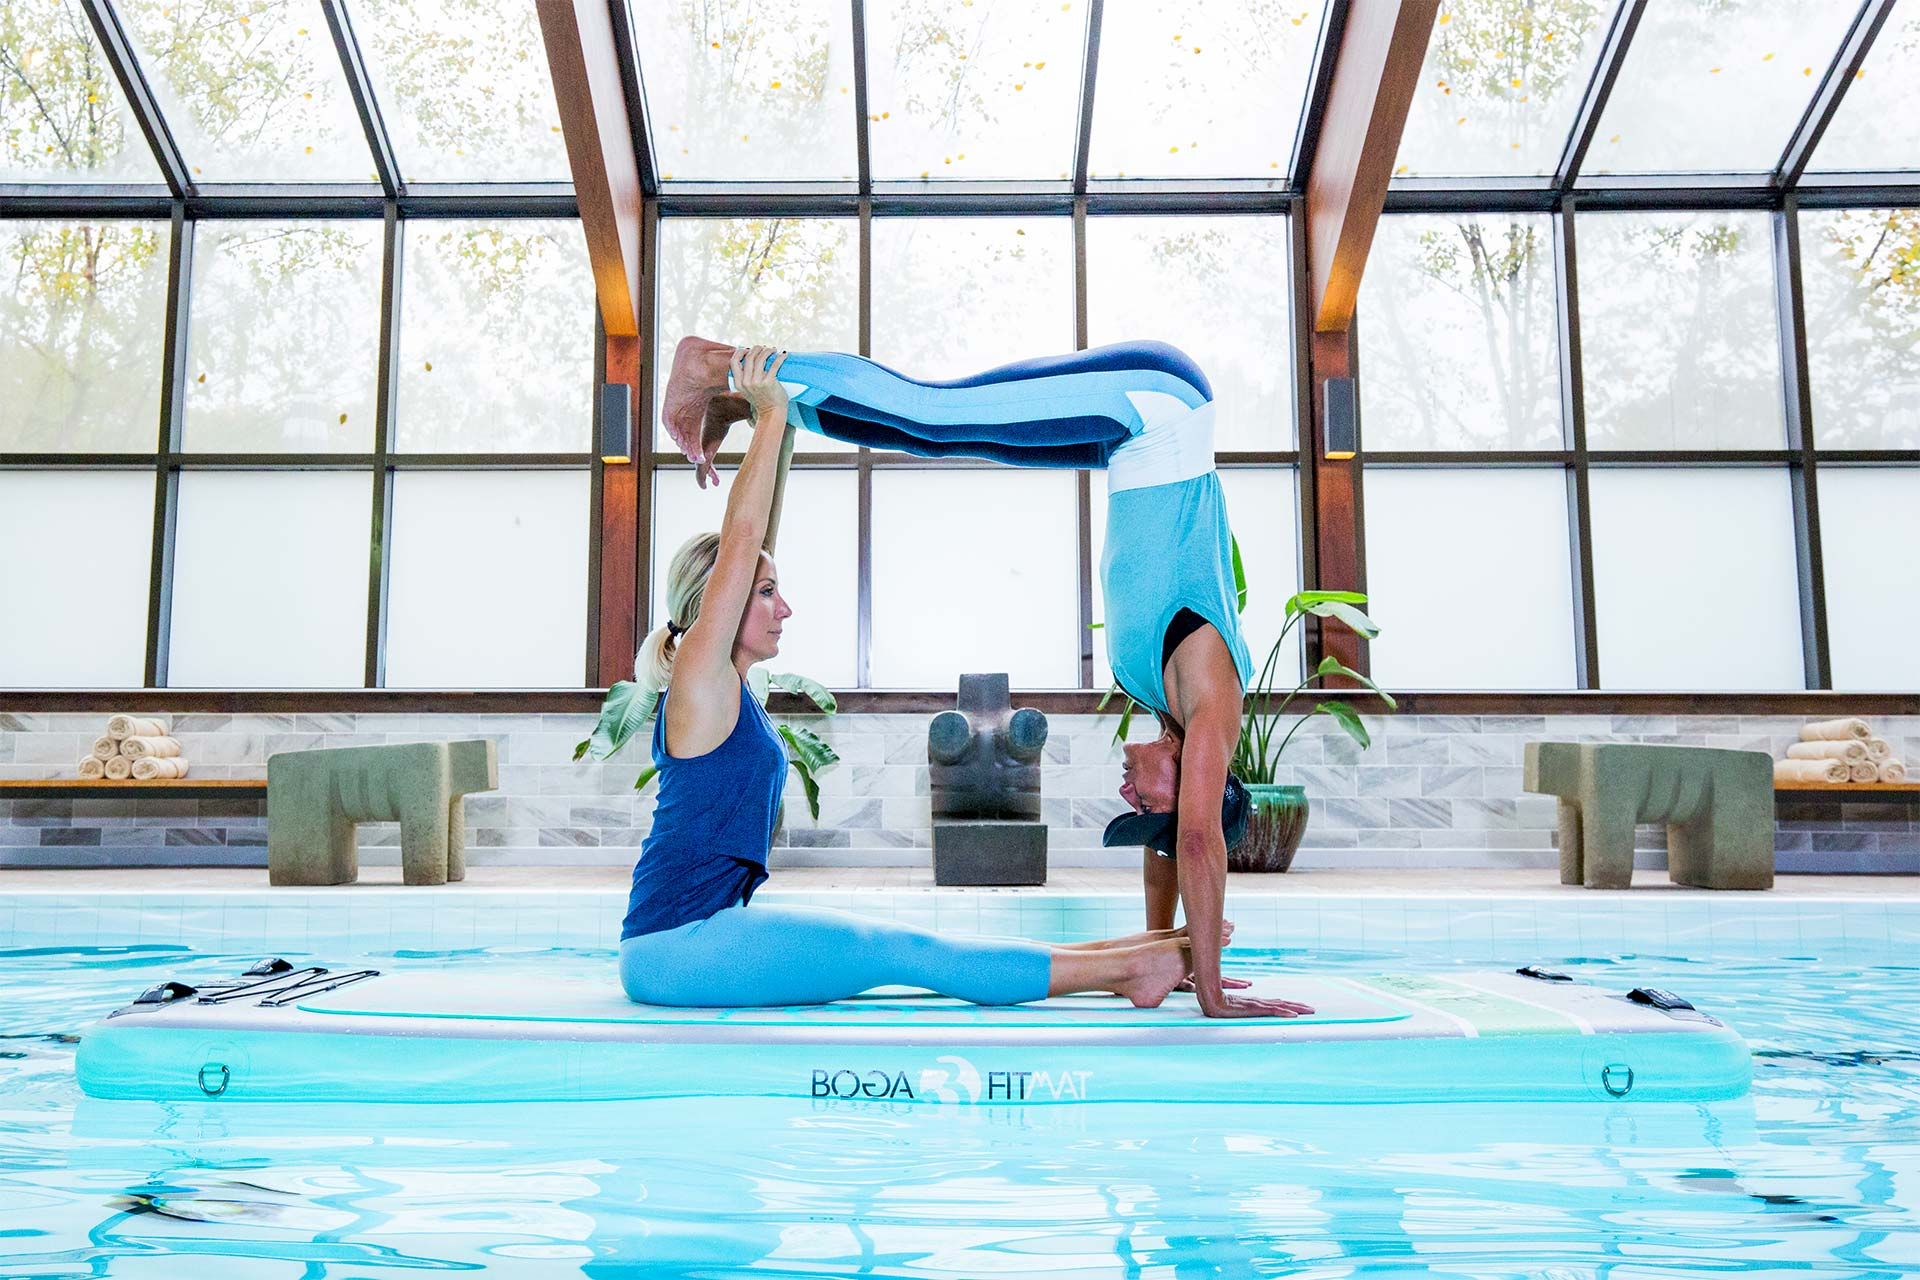 Two women creating a square with their bodies doing yoga on a float at an indoor pool